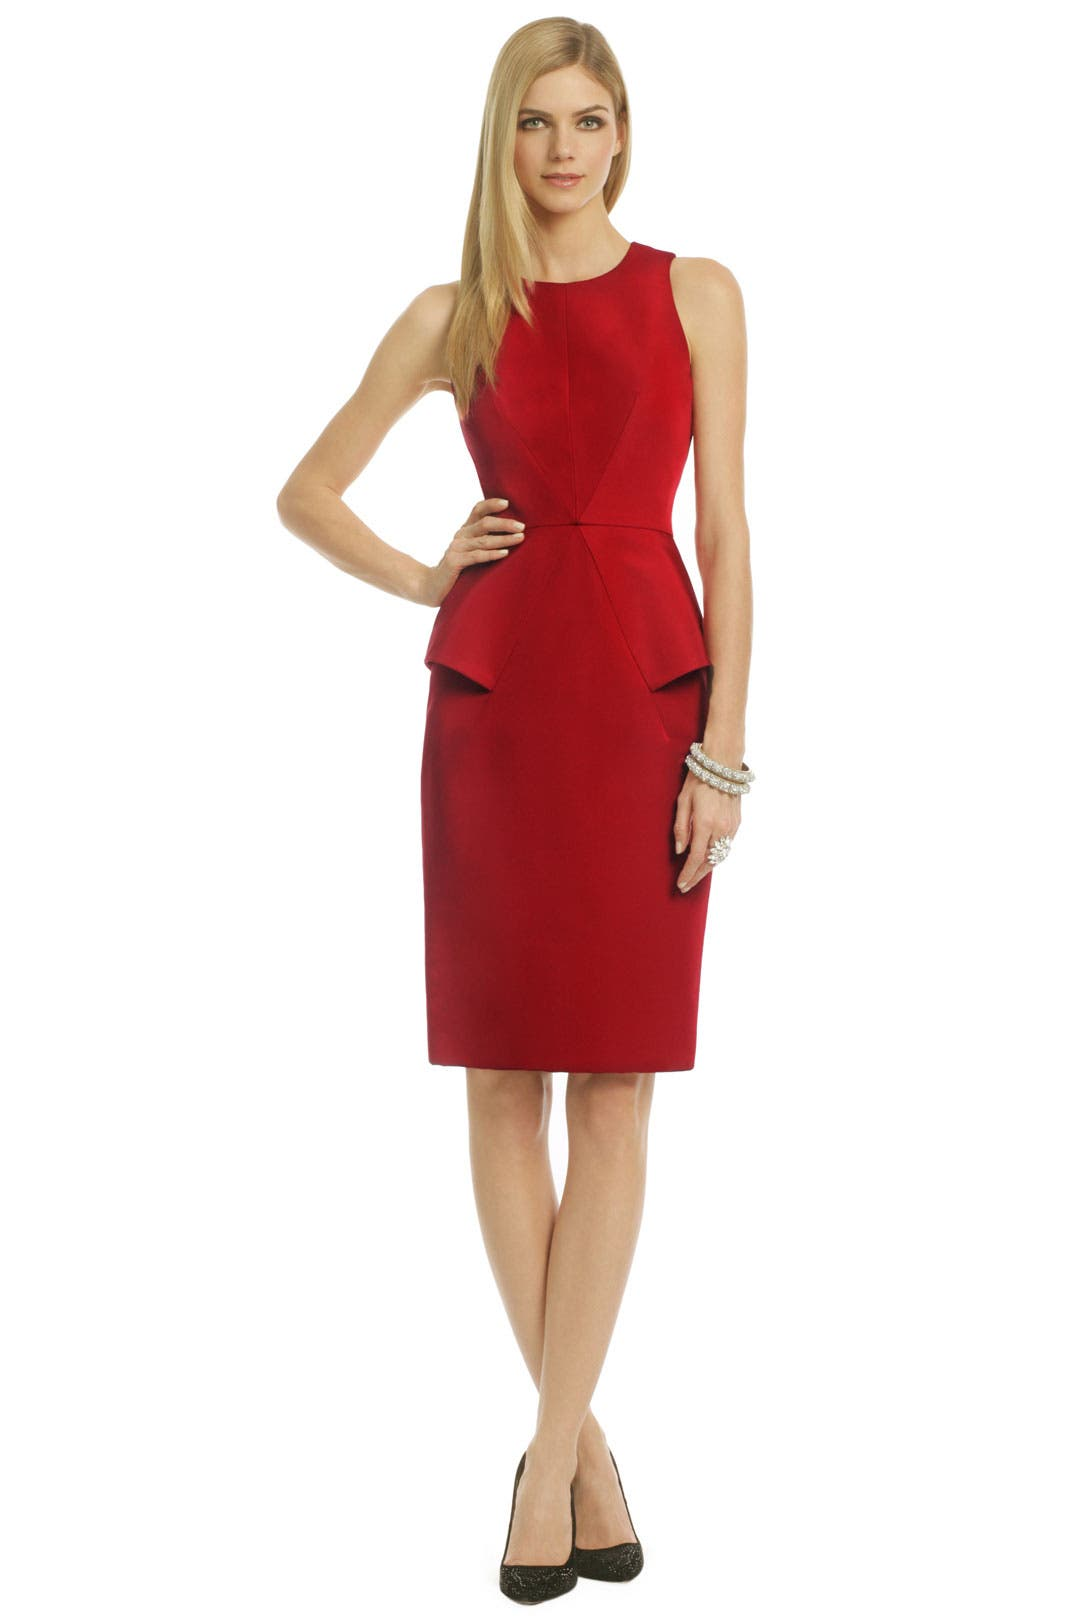 Burning Passion Peplum Dress by Cushnie Et Ochs